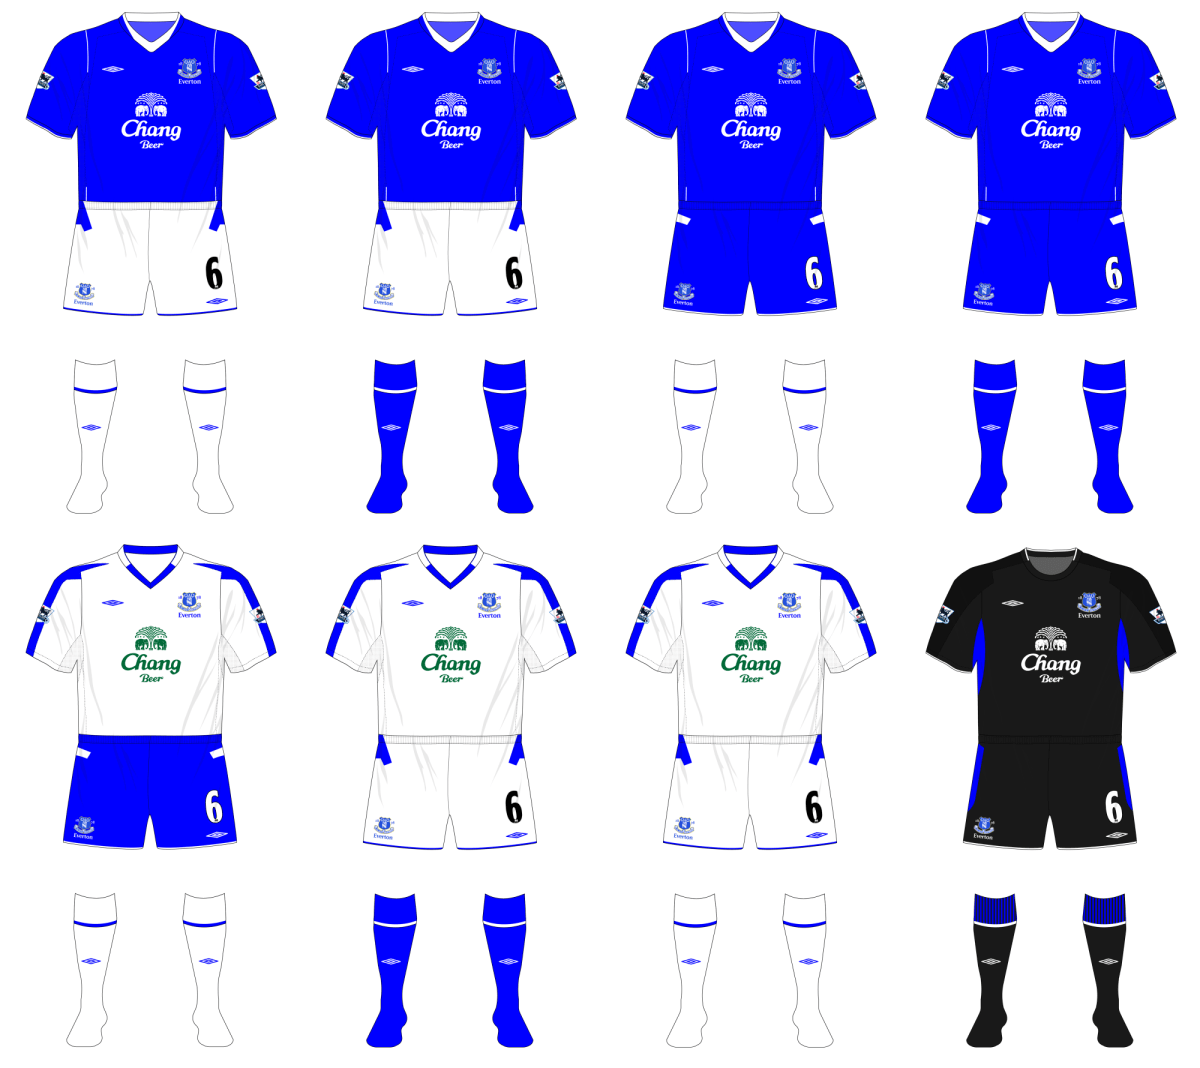 Season in kits - Everton, 2004-05